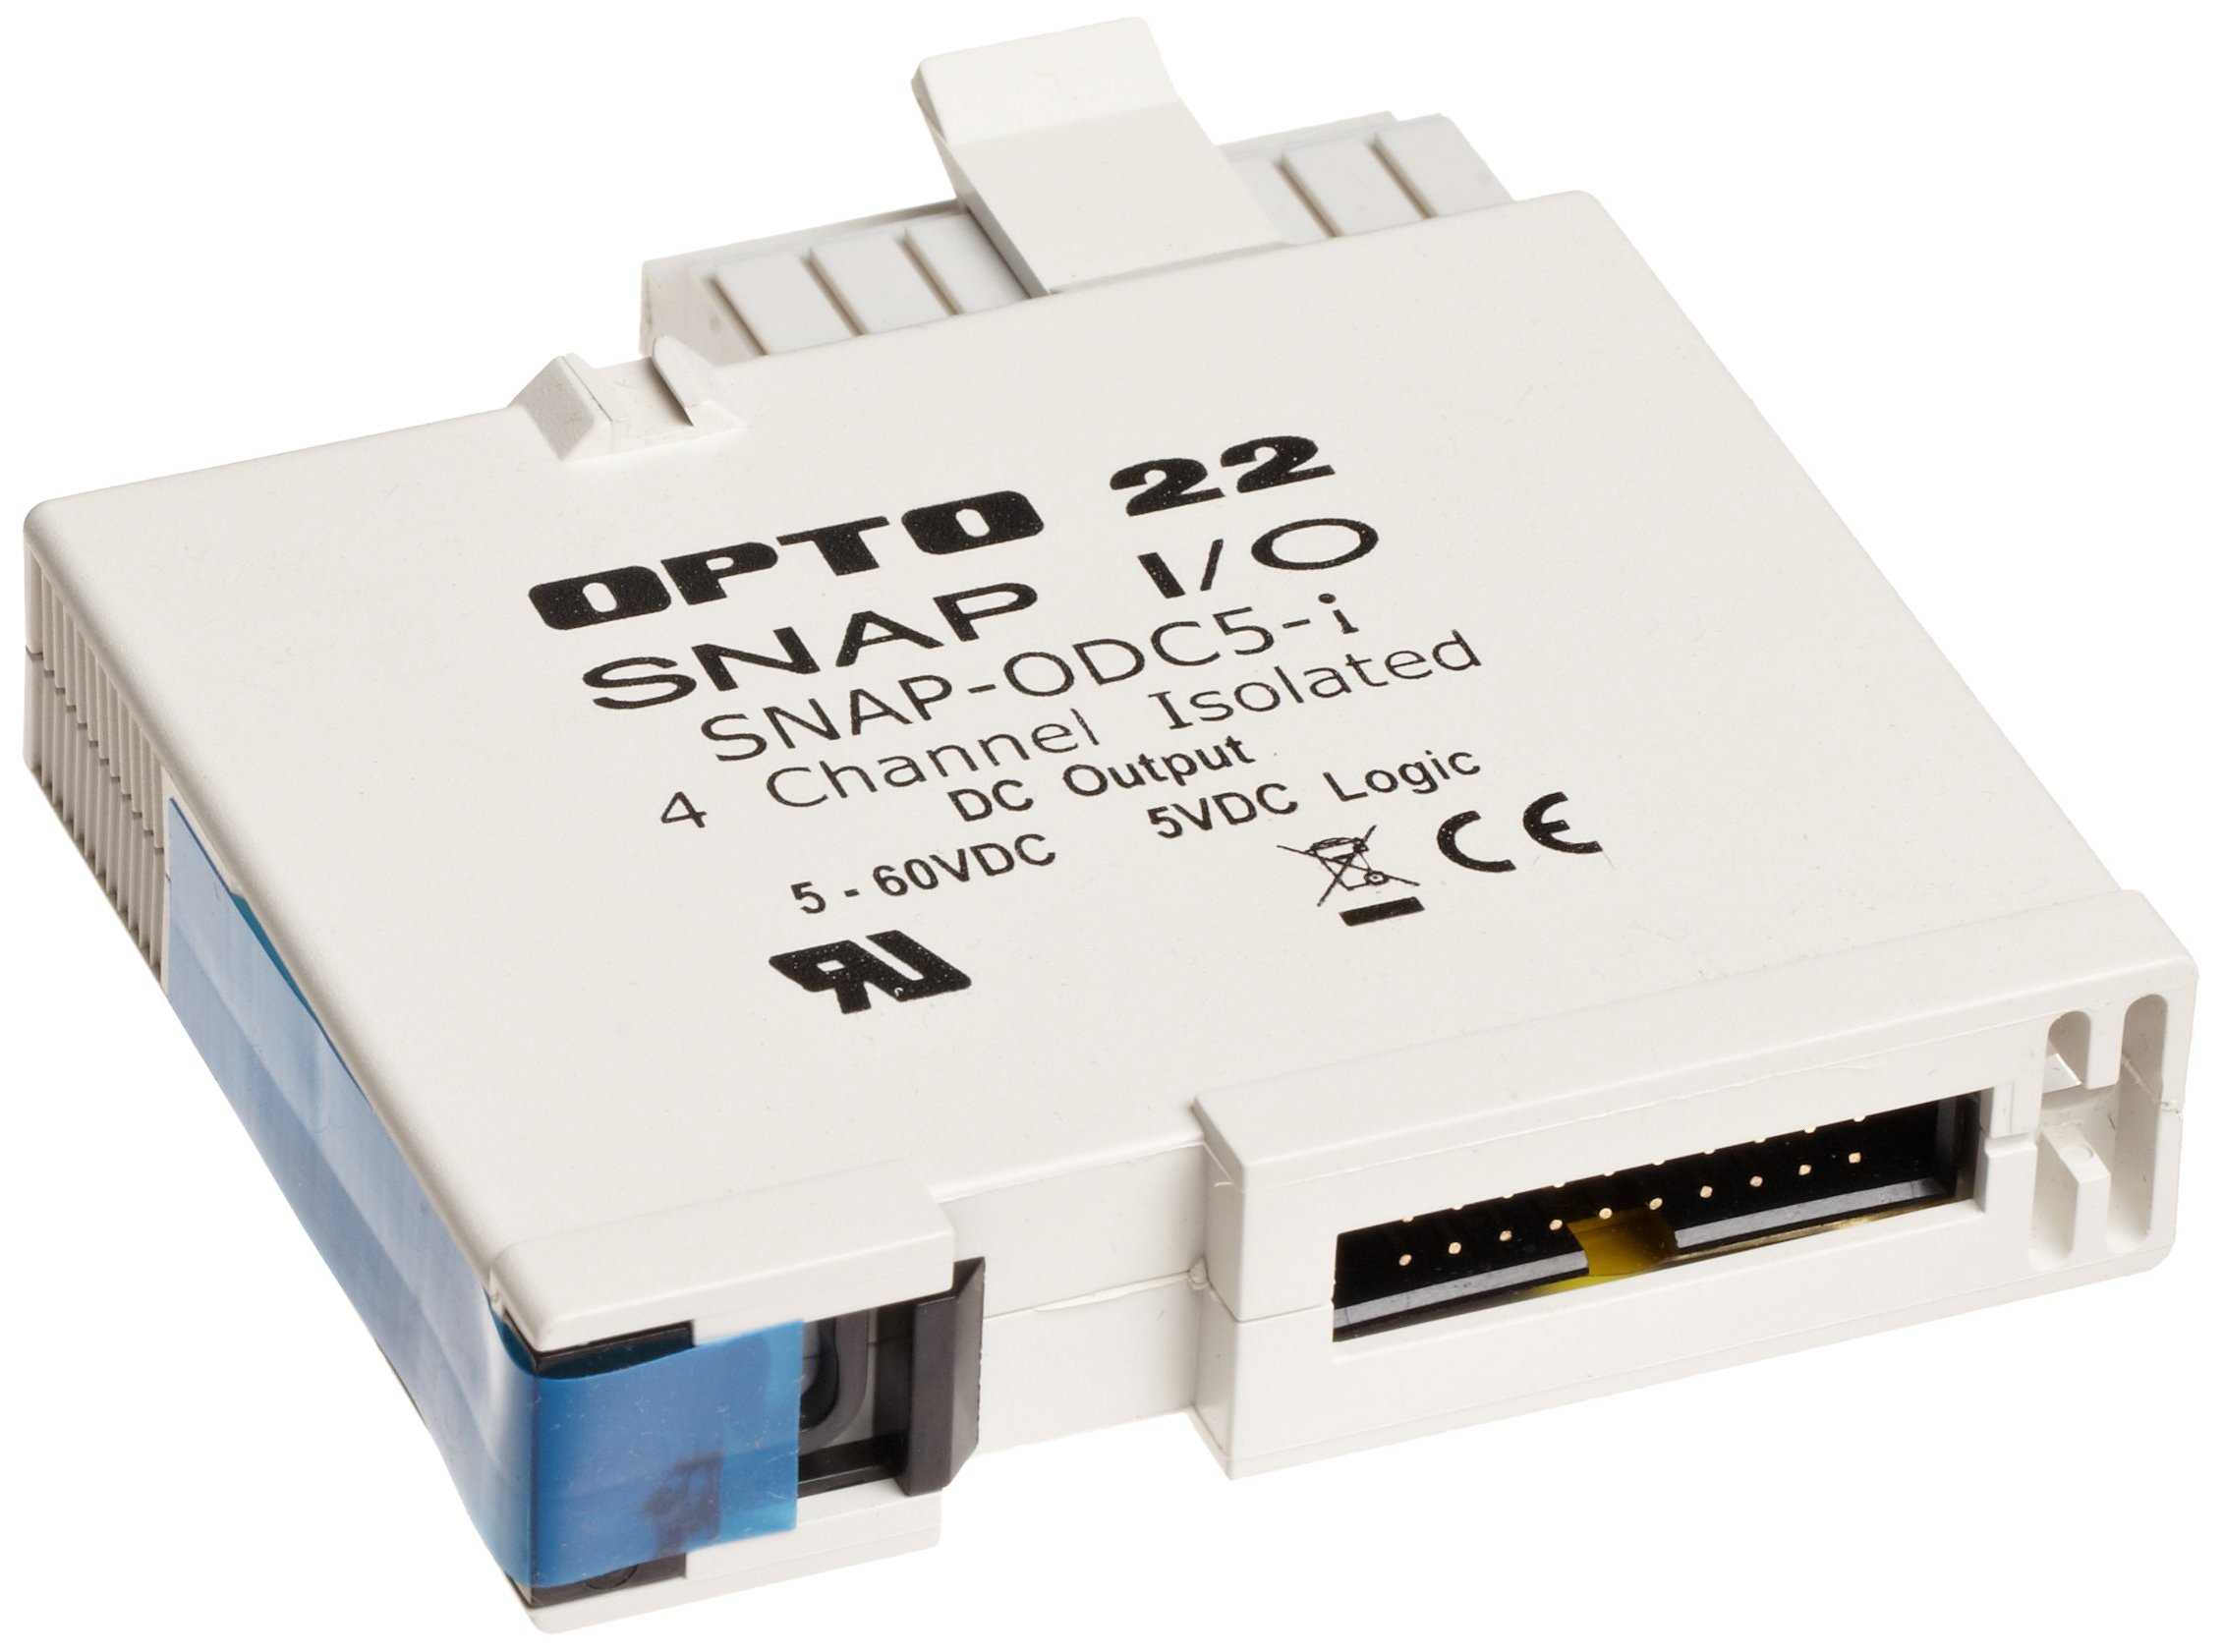 Opto 22 SNAP-ODC5-I - SNAP Digital (Discrete) Output Module, 4 Isolated Channels, 5-60 VDC